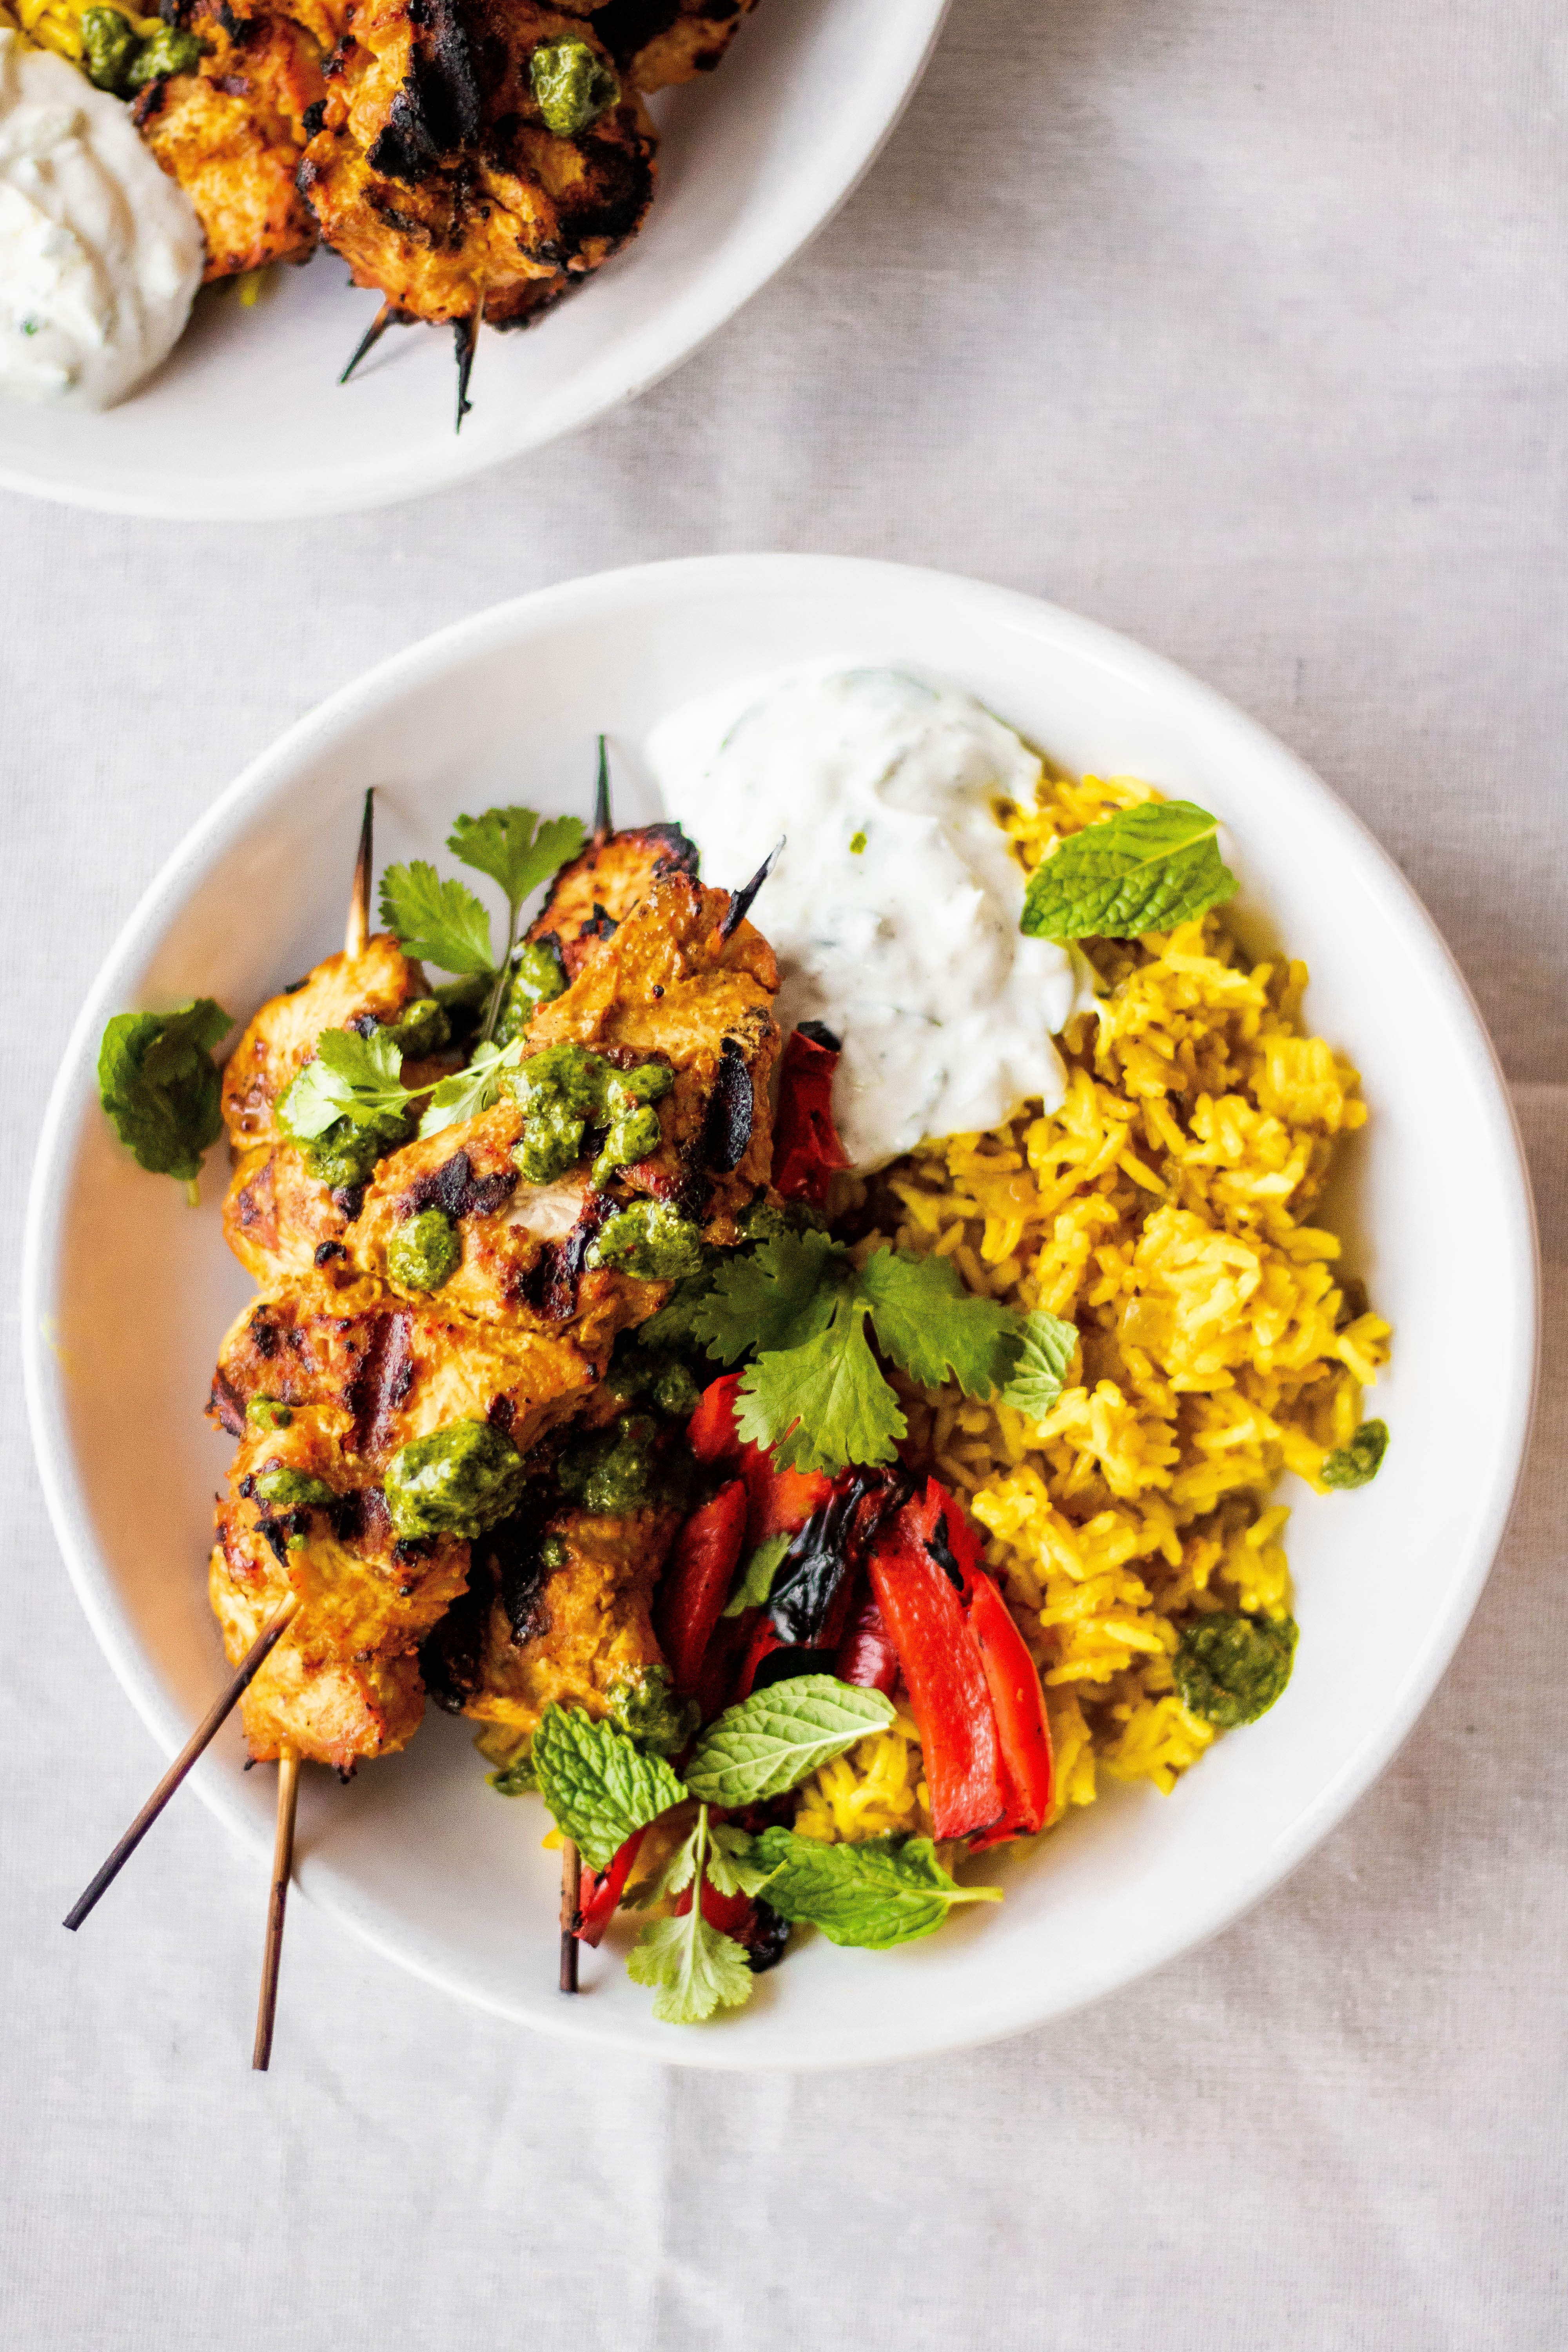 Spiced Chicken Skewers Over Rice